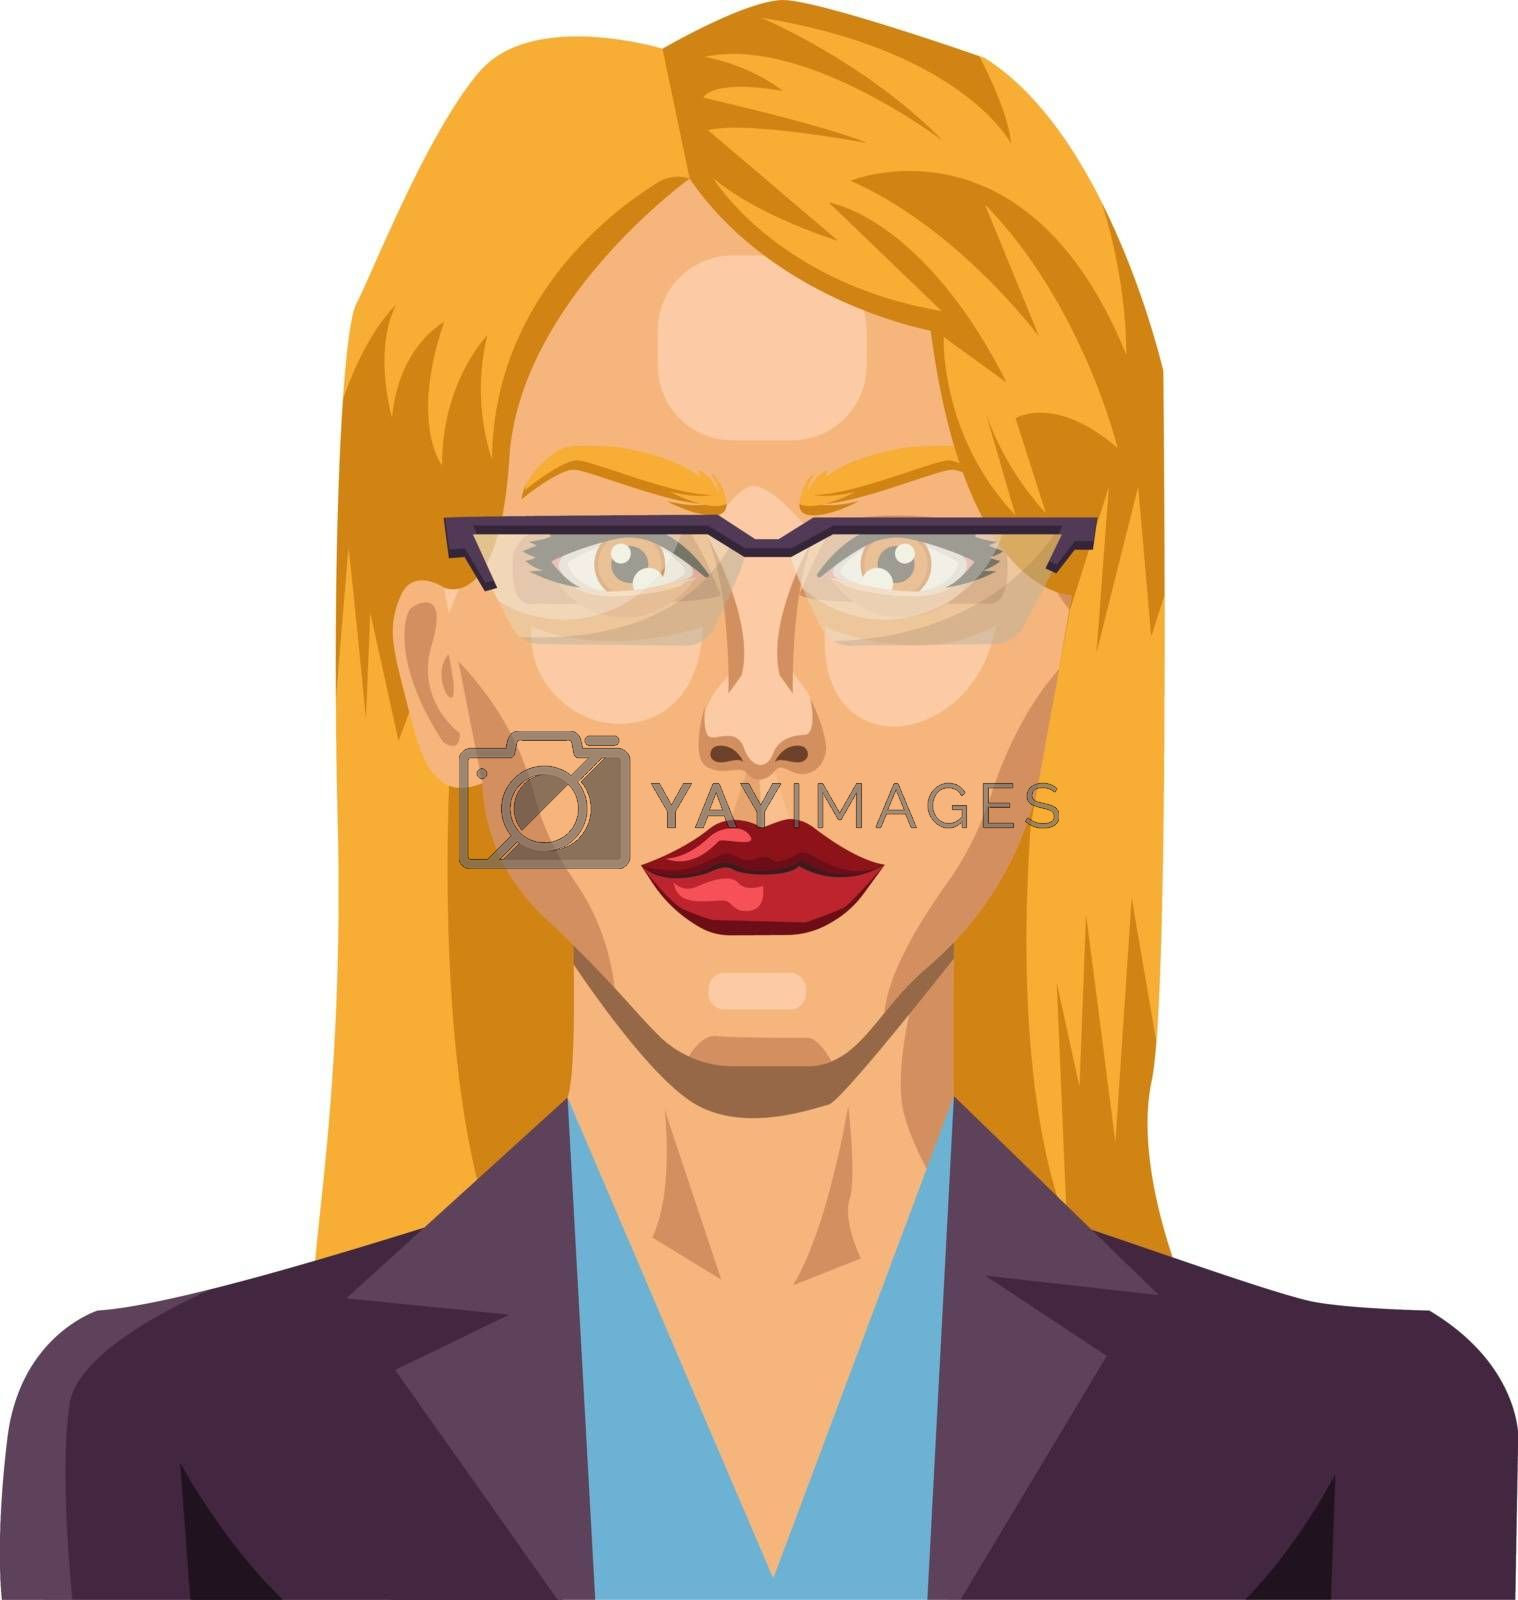 Royalty free image of Blonde girl with glasses illustration vector on white background by Morphart